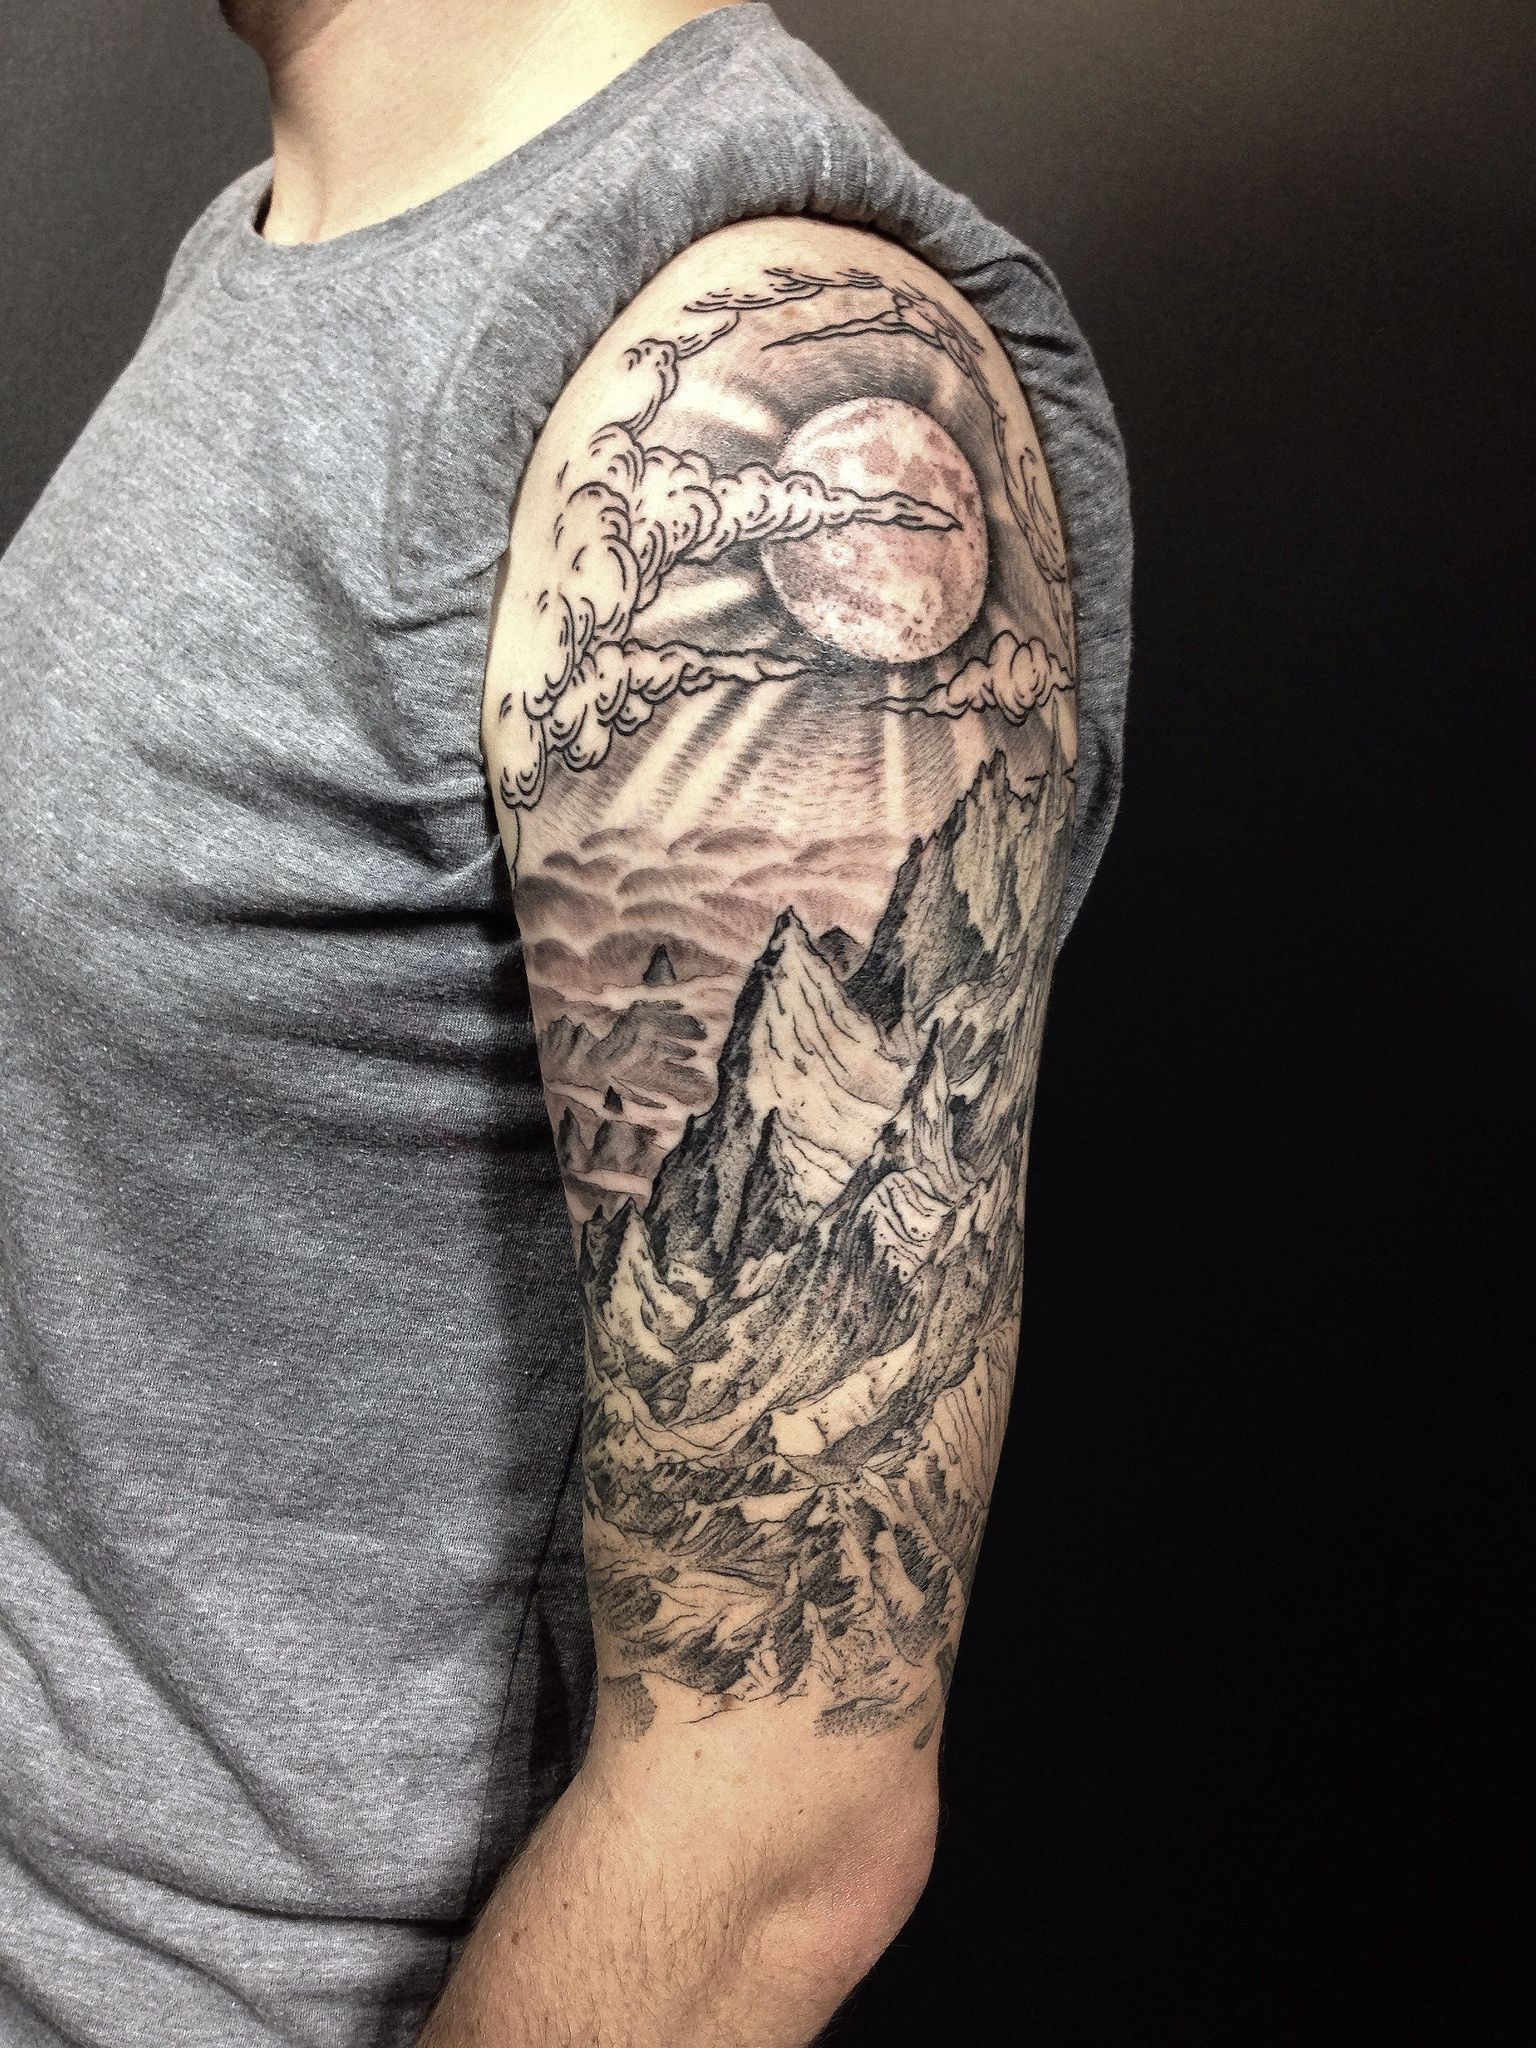 9c8d9d914 ALL DONE! completed Drew's mountain landscape half sleeve in only three  sessions. very happy with how it turned out! | Flickr - Photo Sharing!